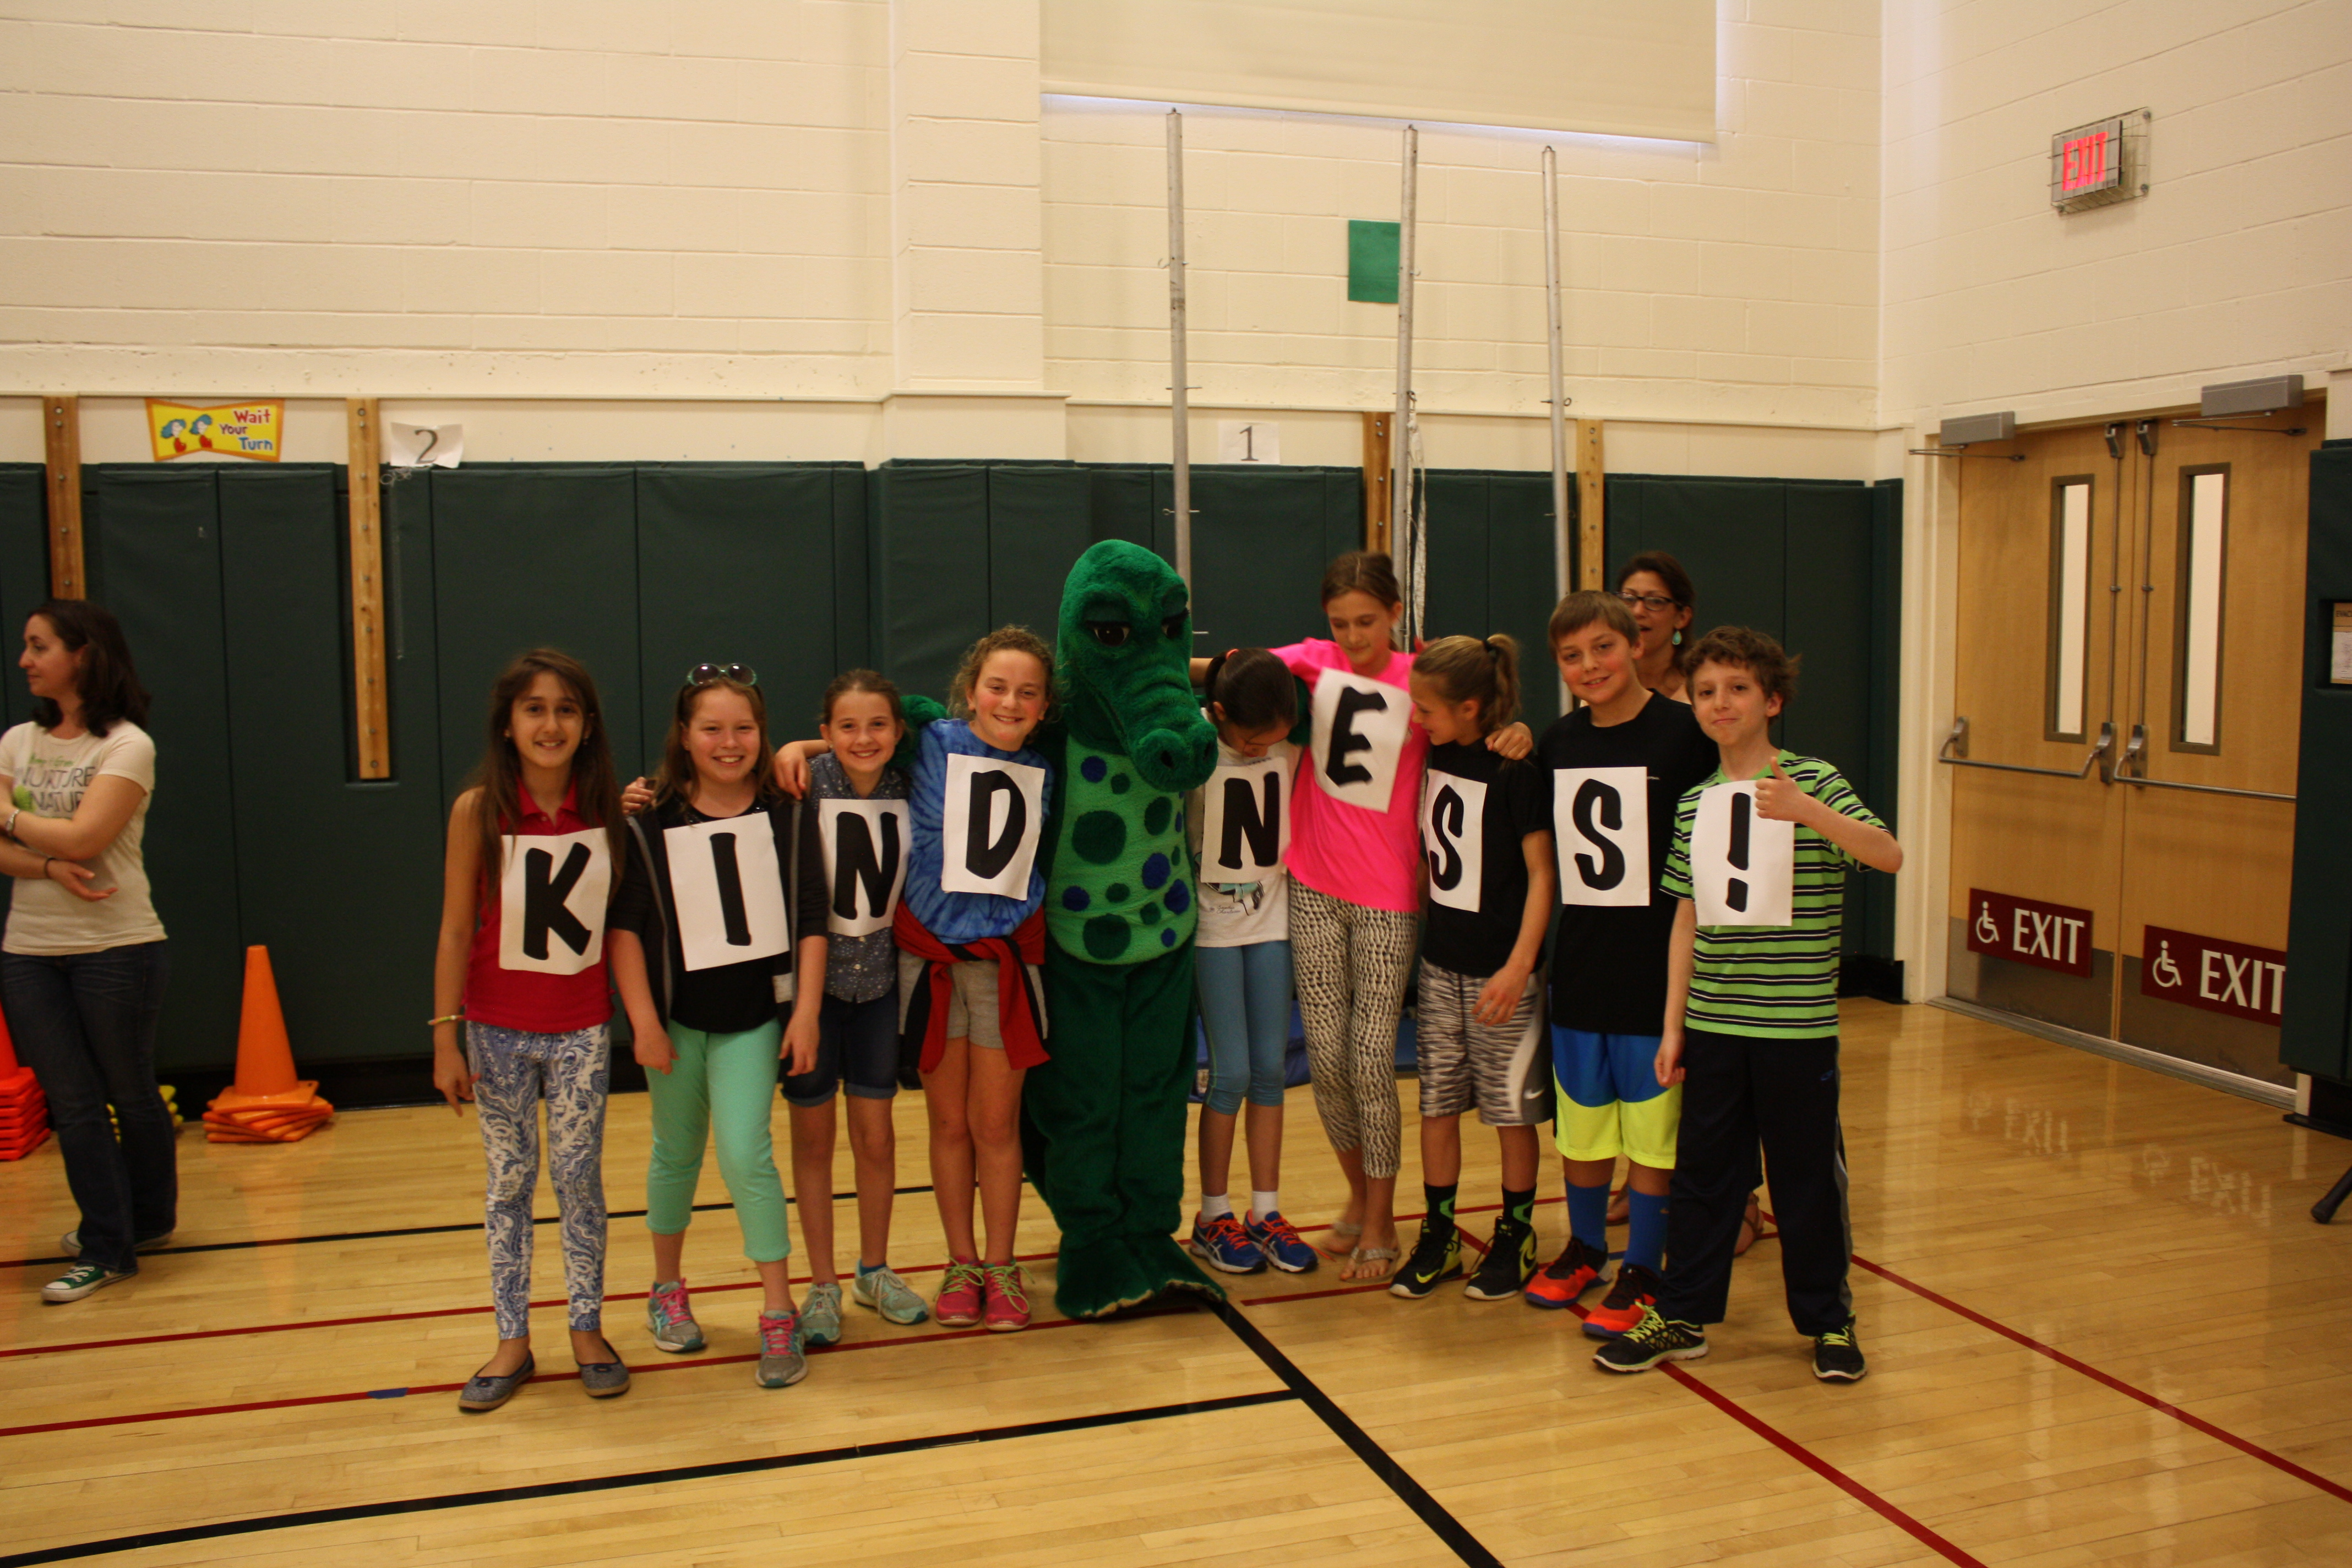 The Kindness Crusaders with Snappy, the school mascot